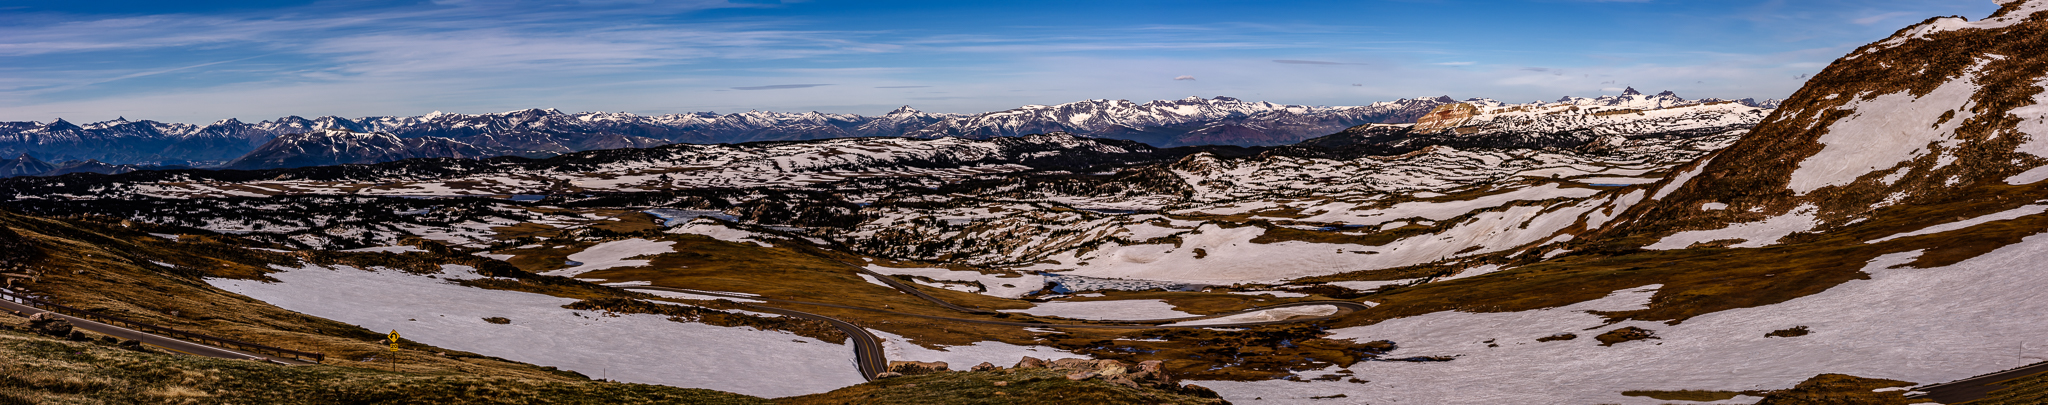 On the Beartooth Highway